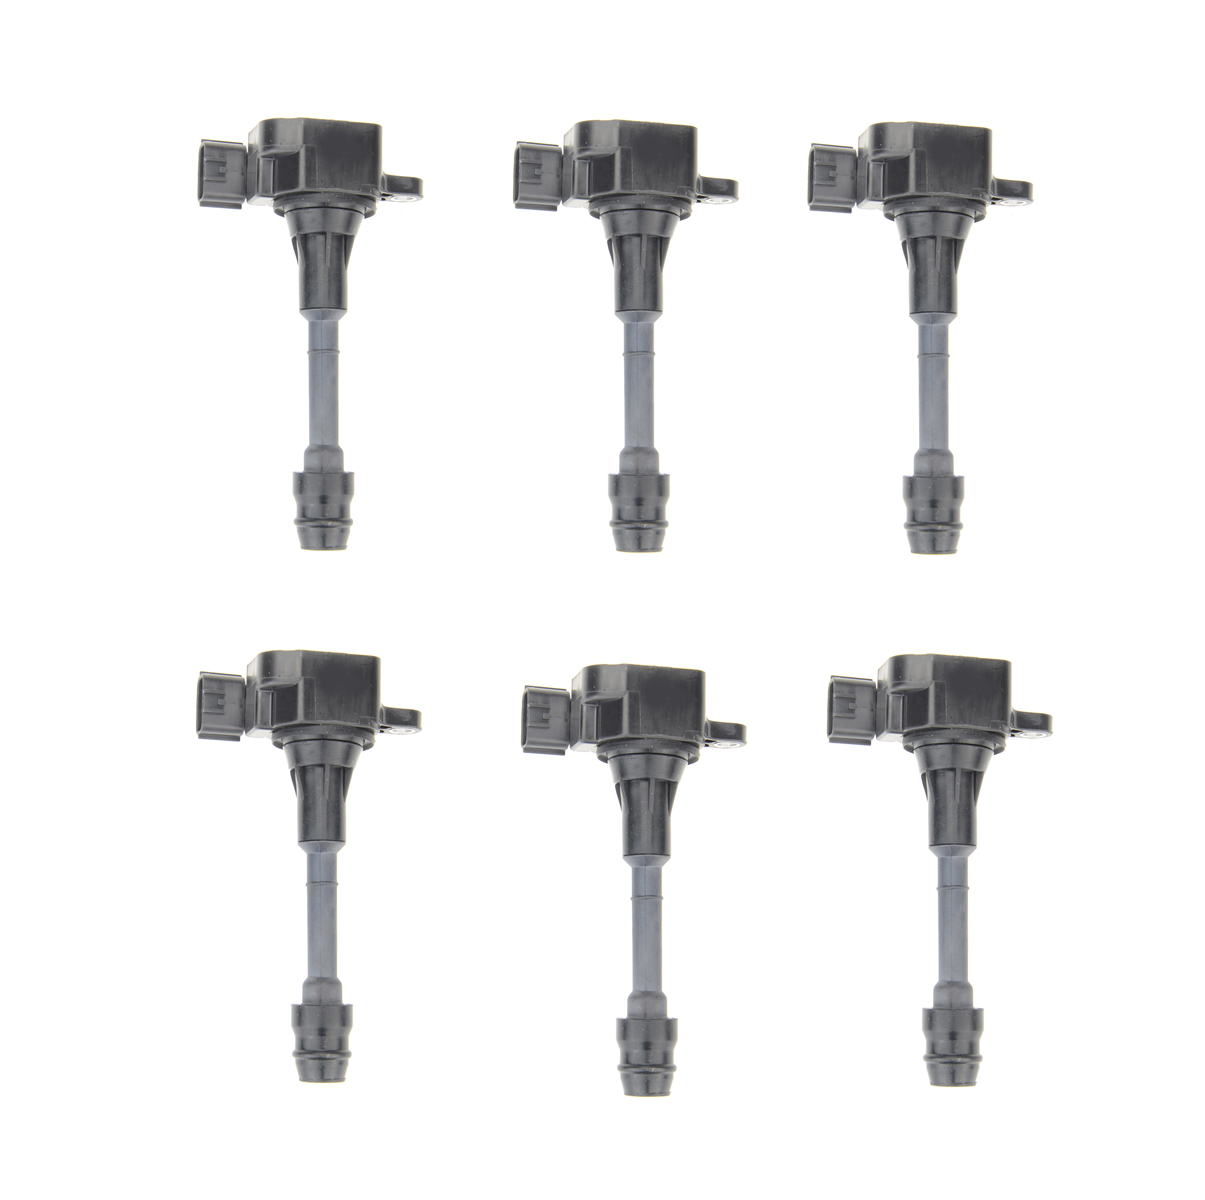 Set of 6pcs Ignition Coil for Nissan 350Z Fairlady Z33